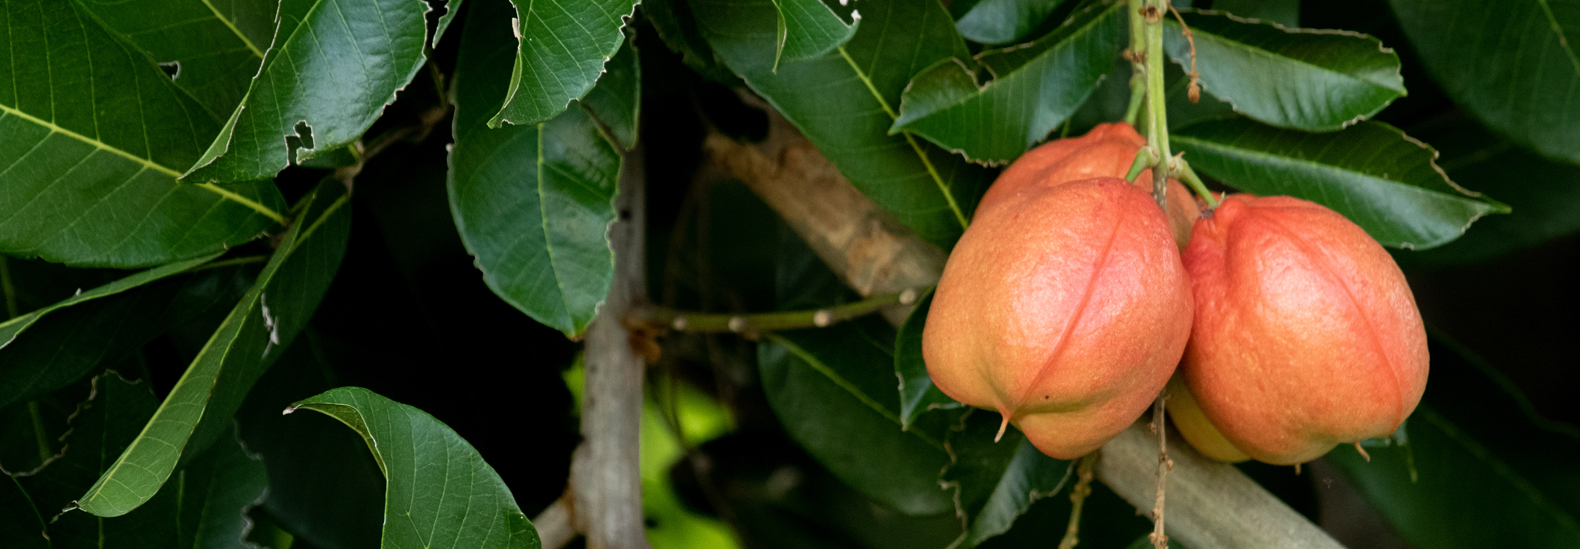 Part Ii More Fruit Of Poisonous Tree >> Are You Accidentally Eating The Toxic Parts Of Fruits And Veggies